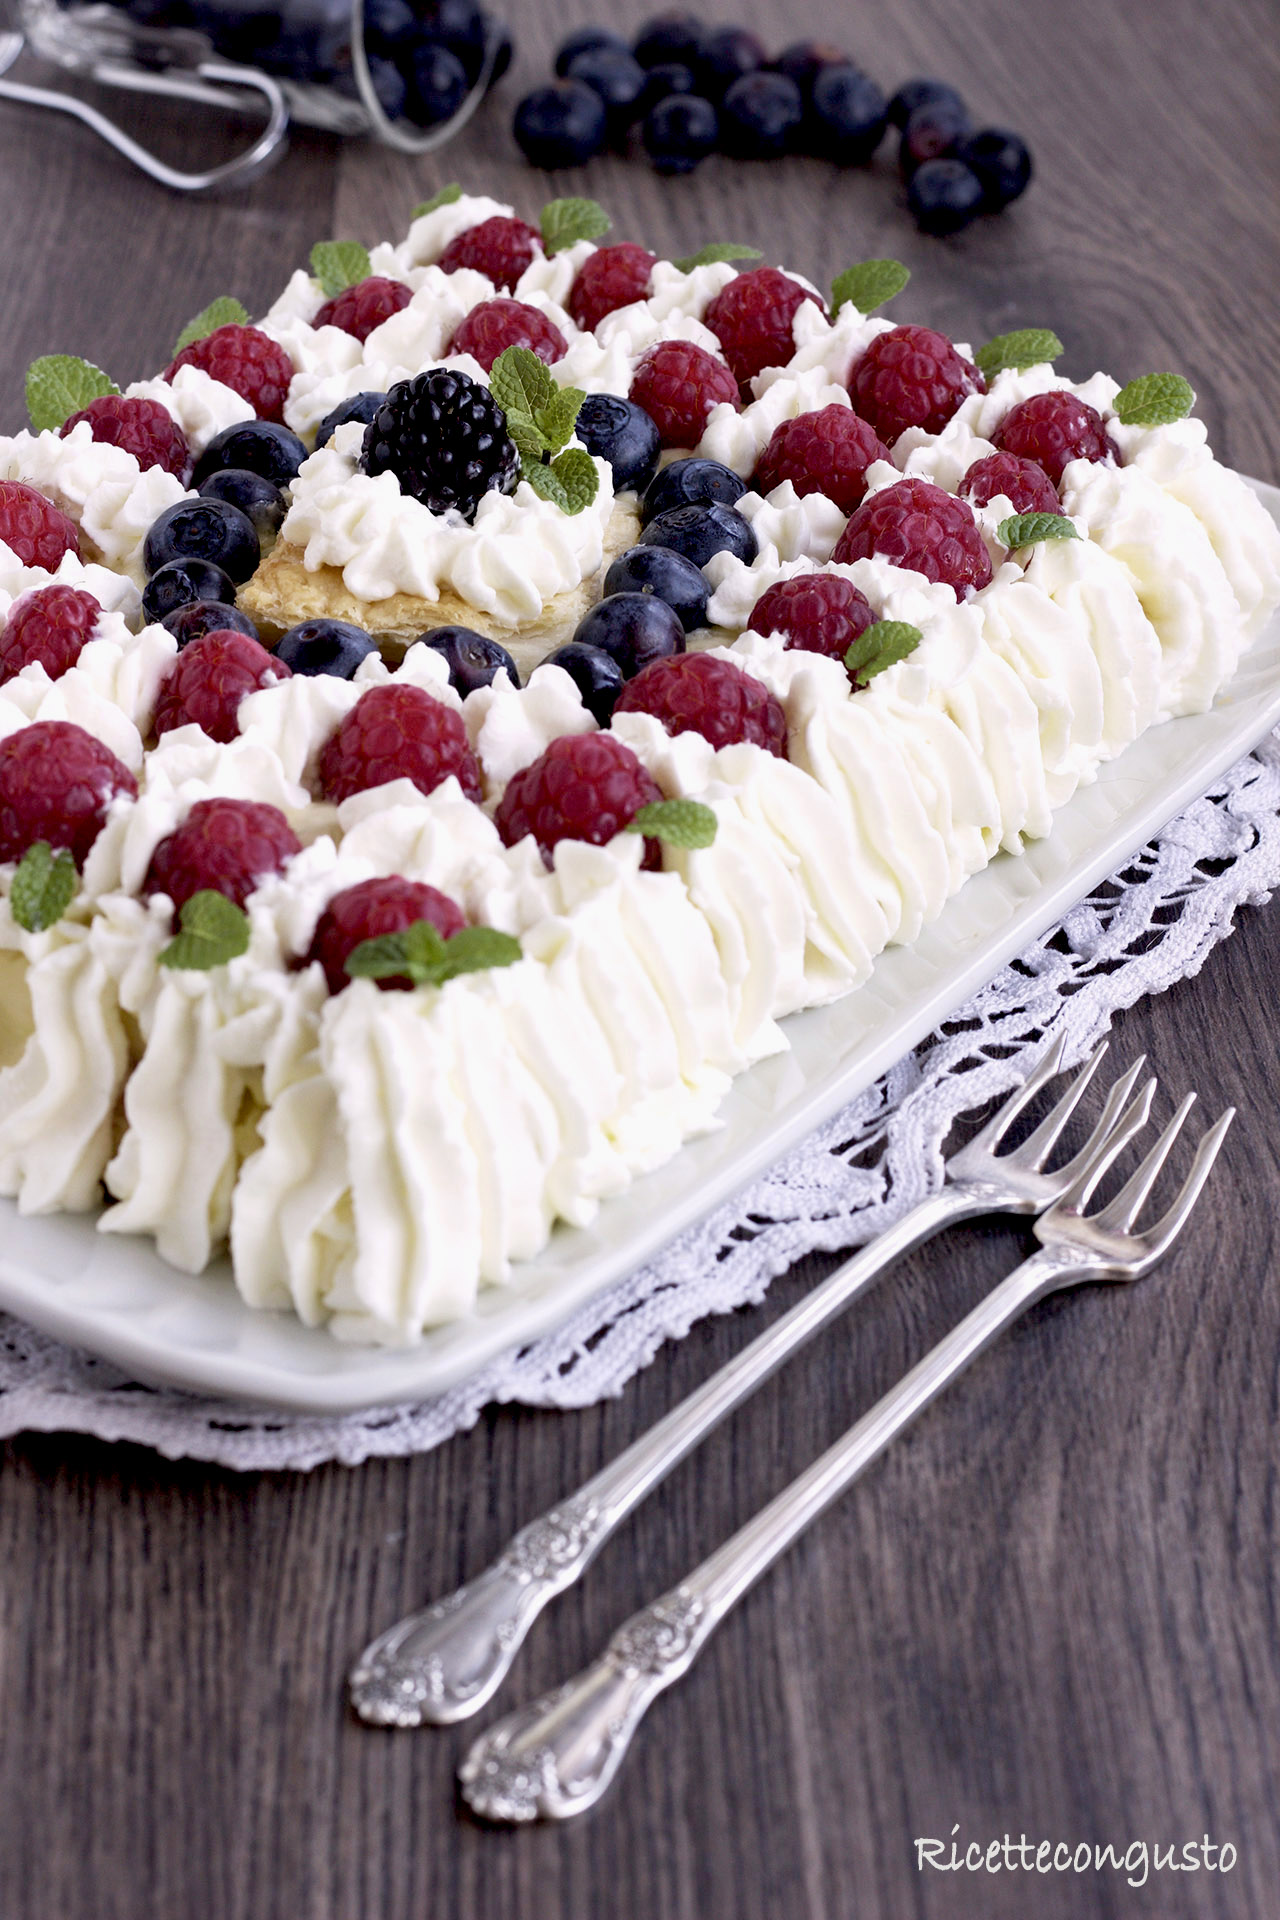 Millefoglie con crema chantilly all'italiana e frutti di bosco